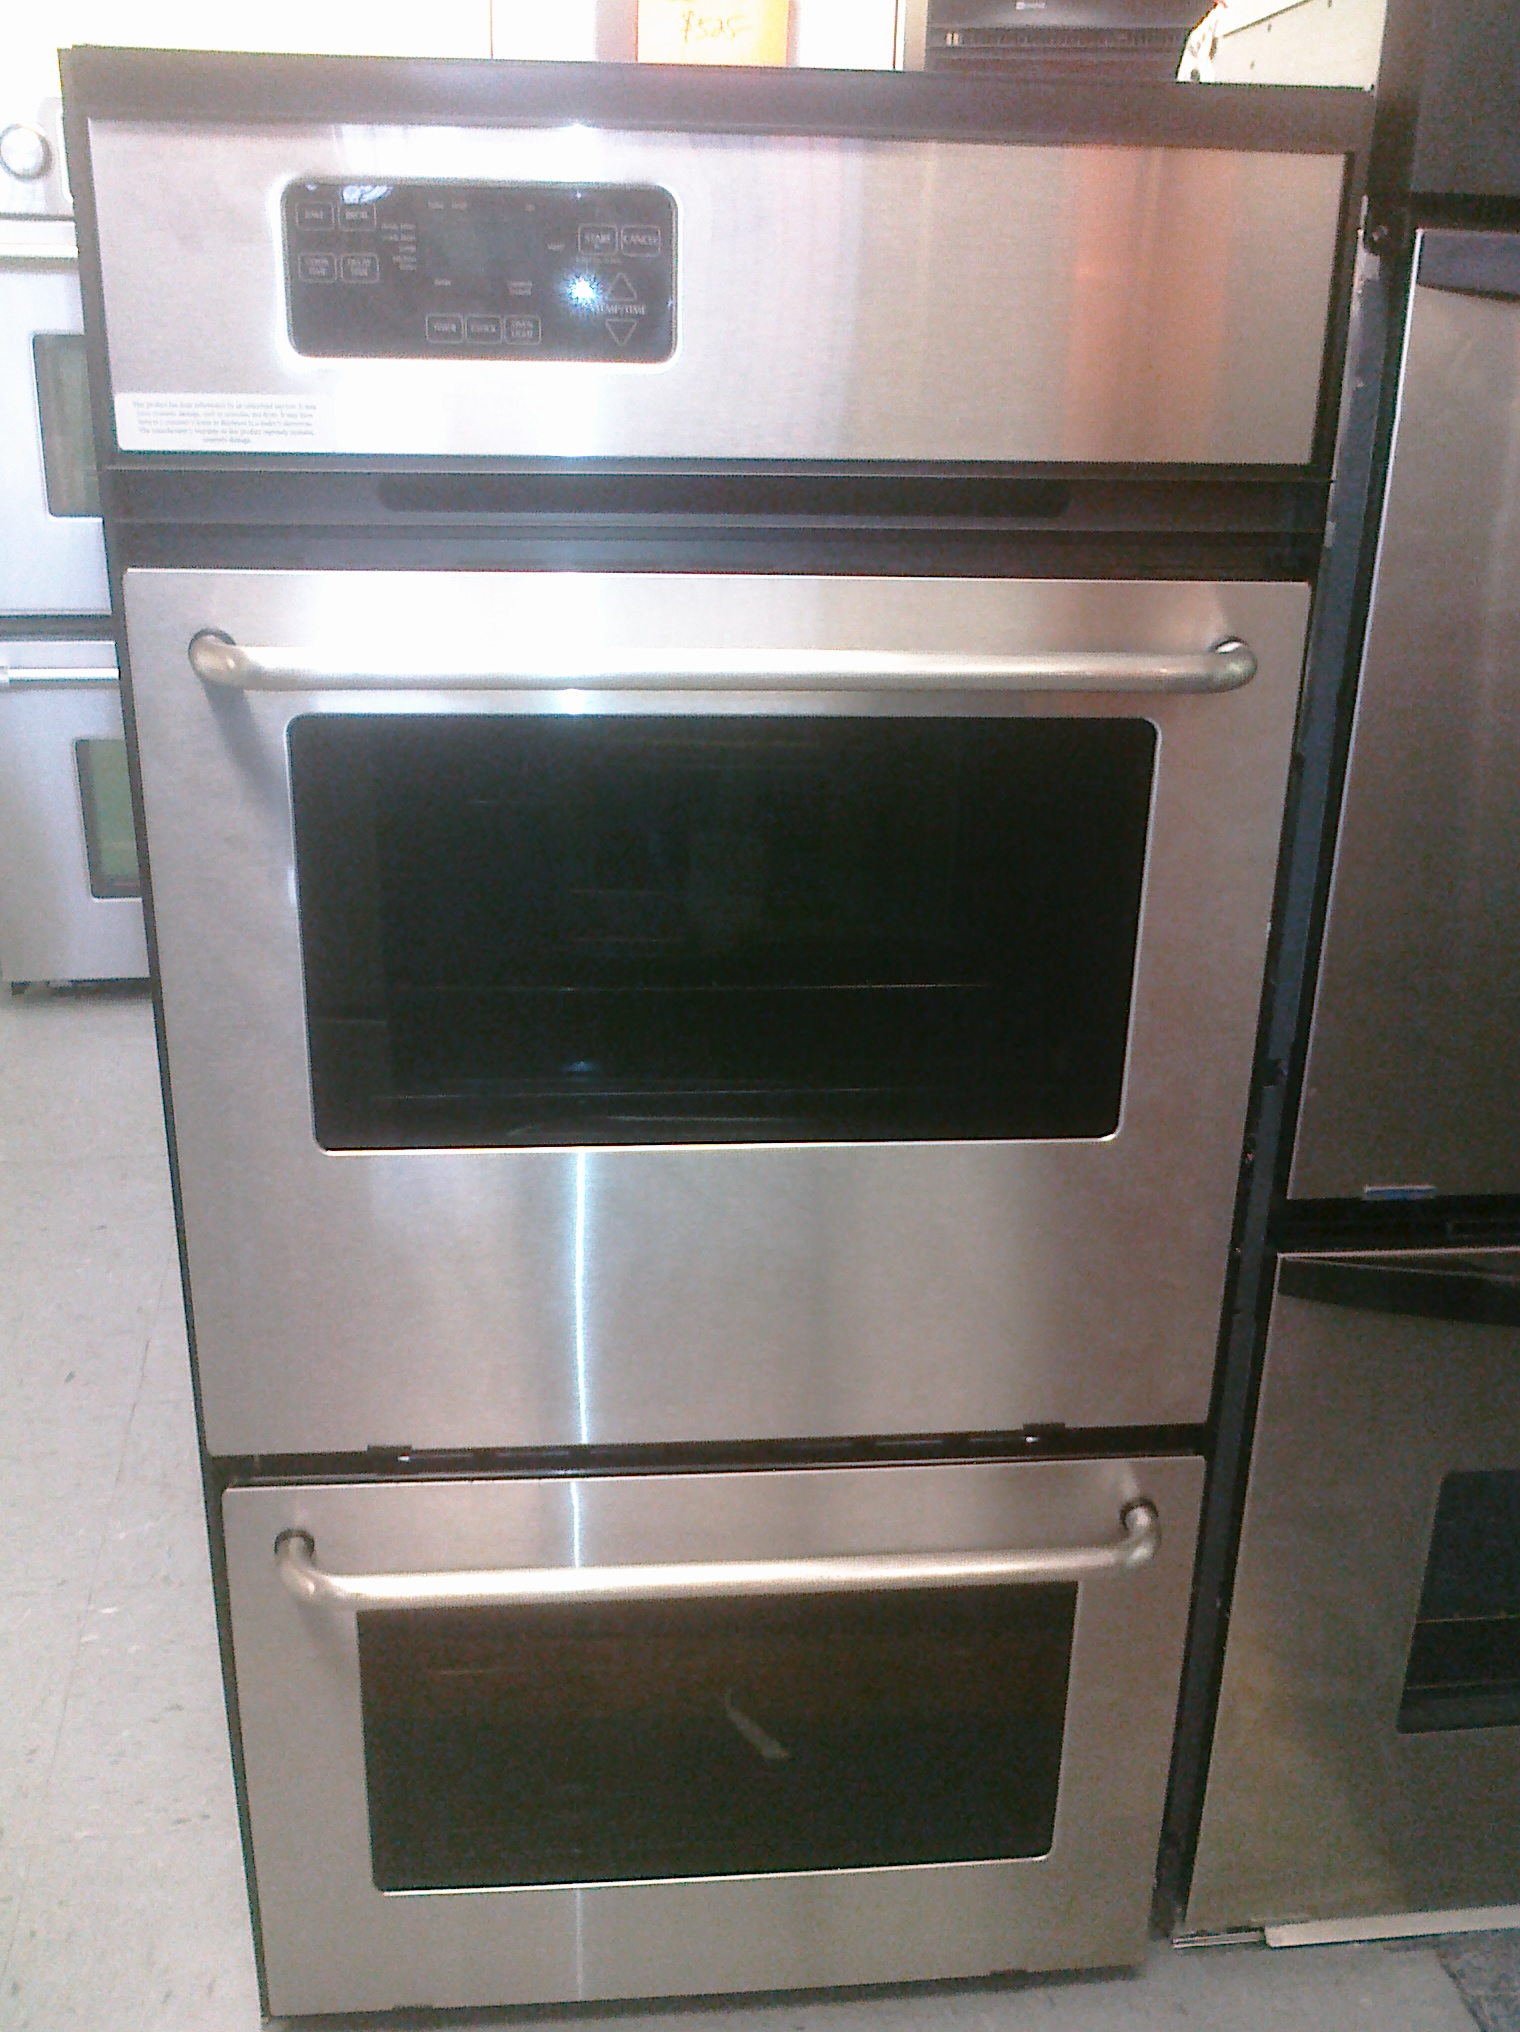 9 Maytag Cwg3600aas 24 Built In Gas Oven With Broiler